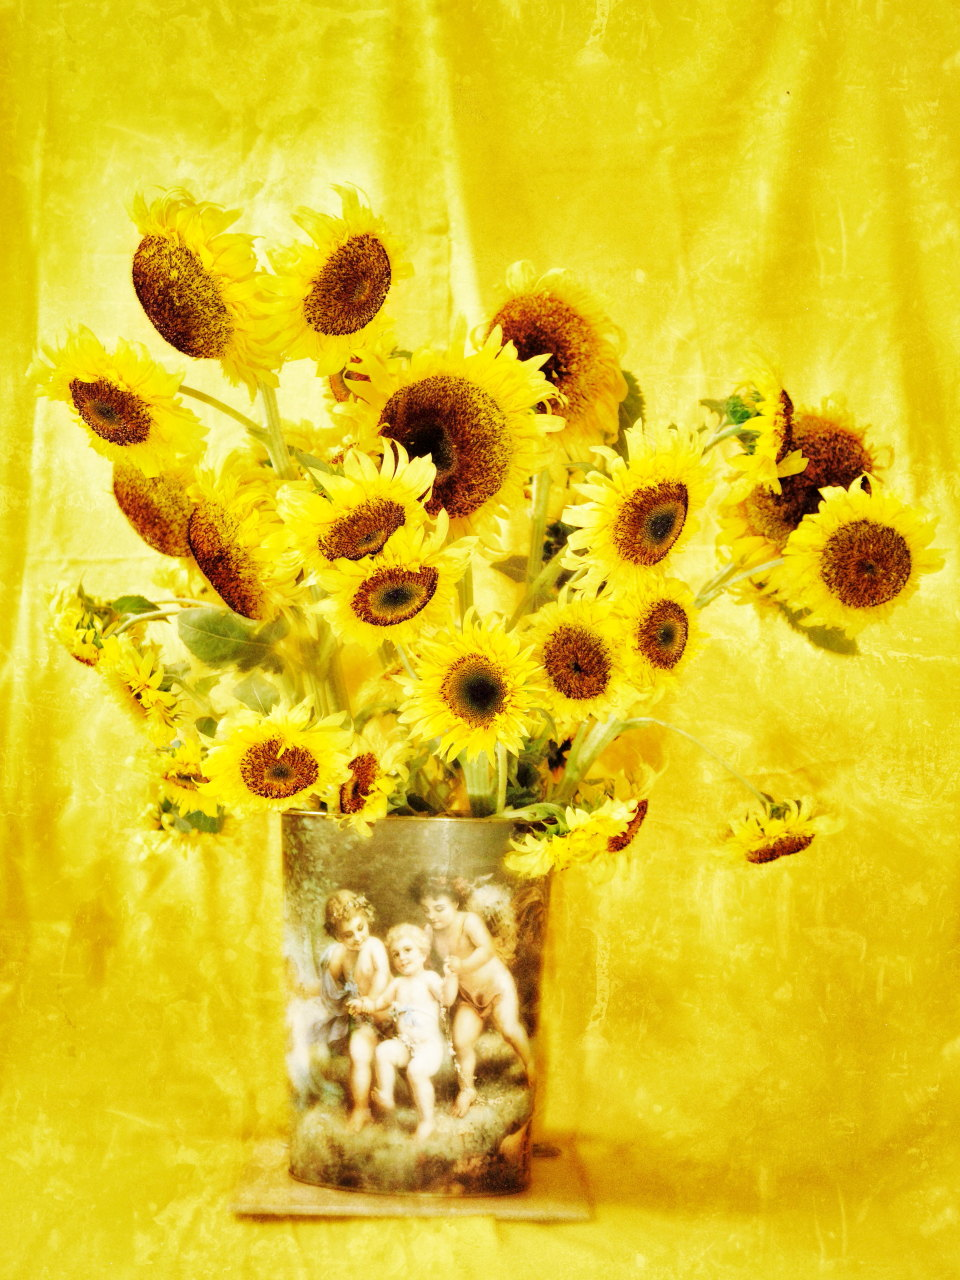 (P+R)Photography [ Sunflower to Van Gogh ]